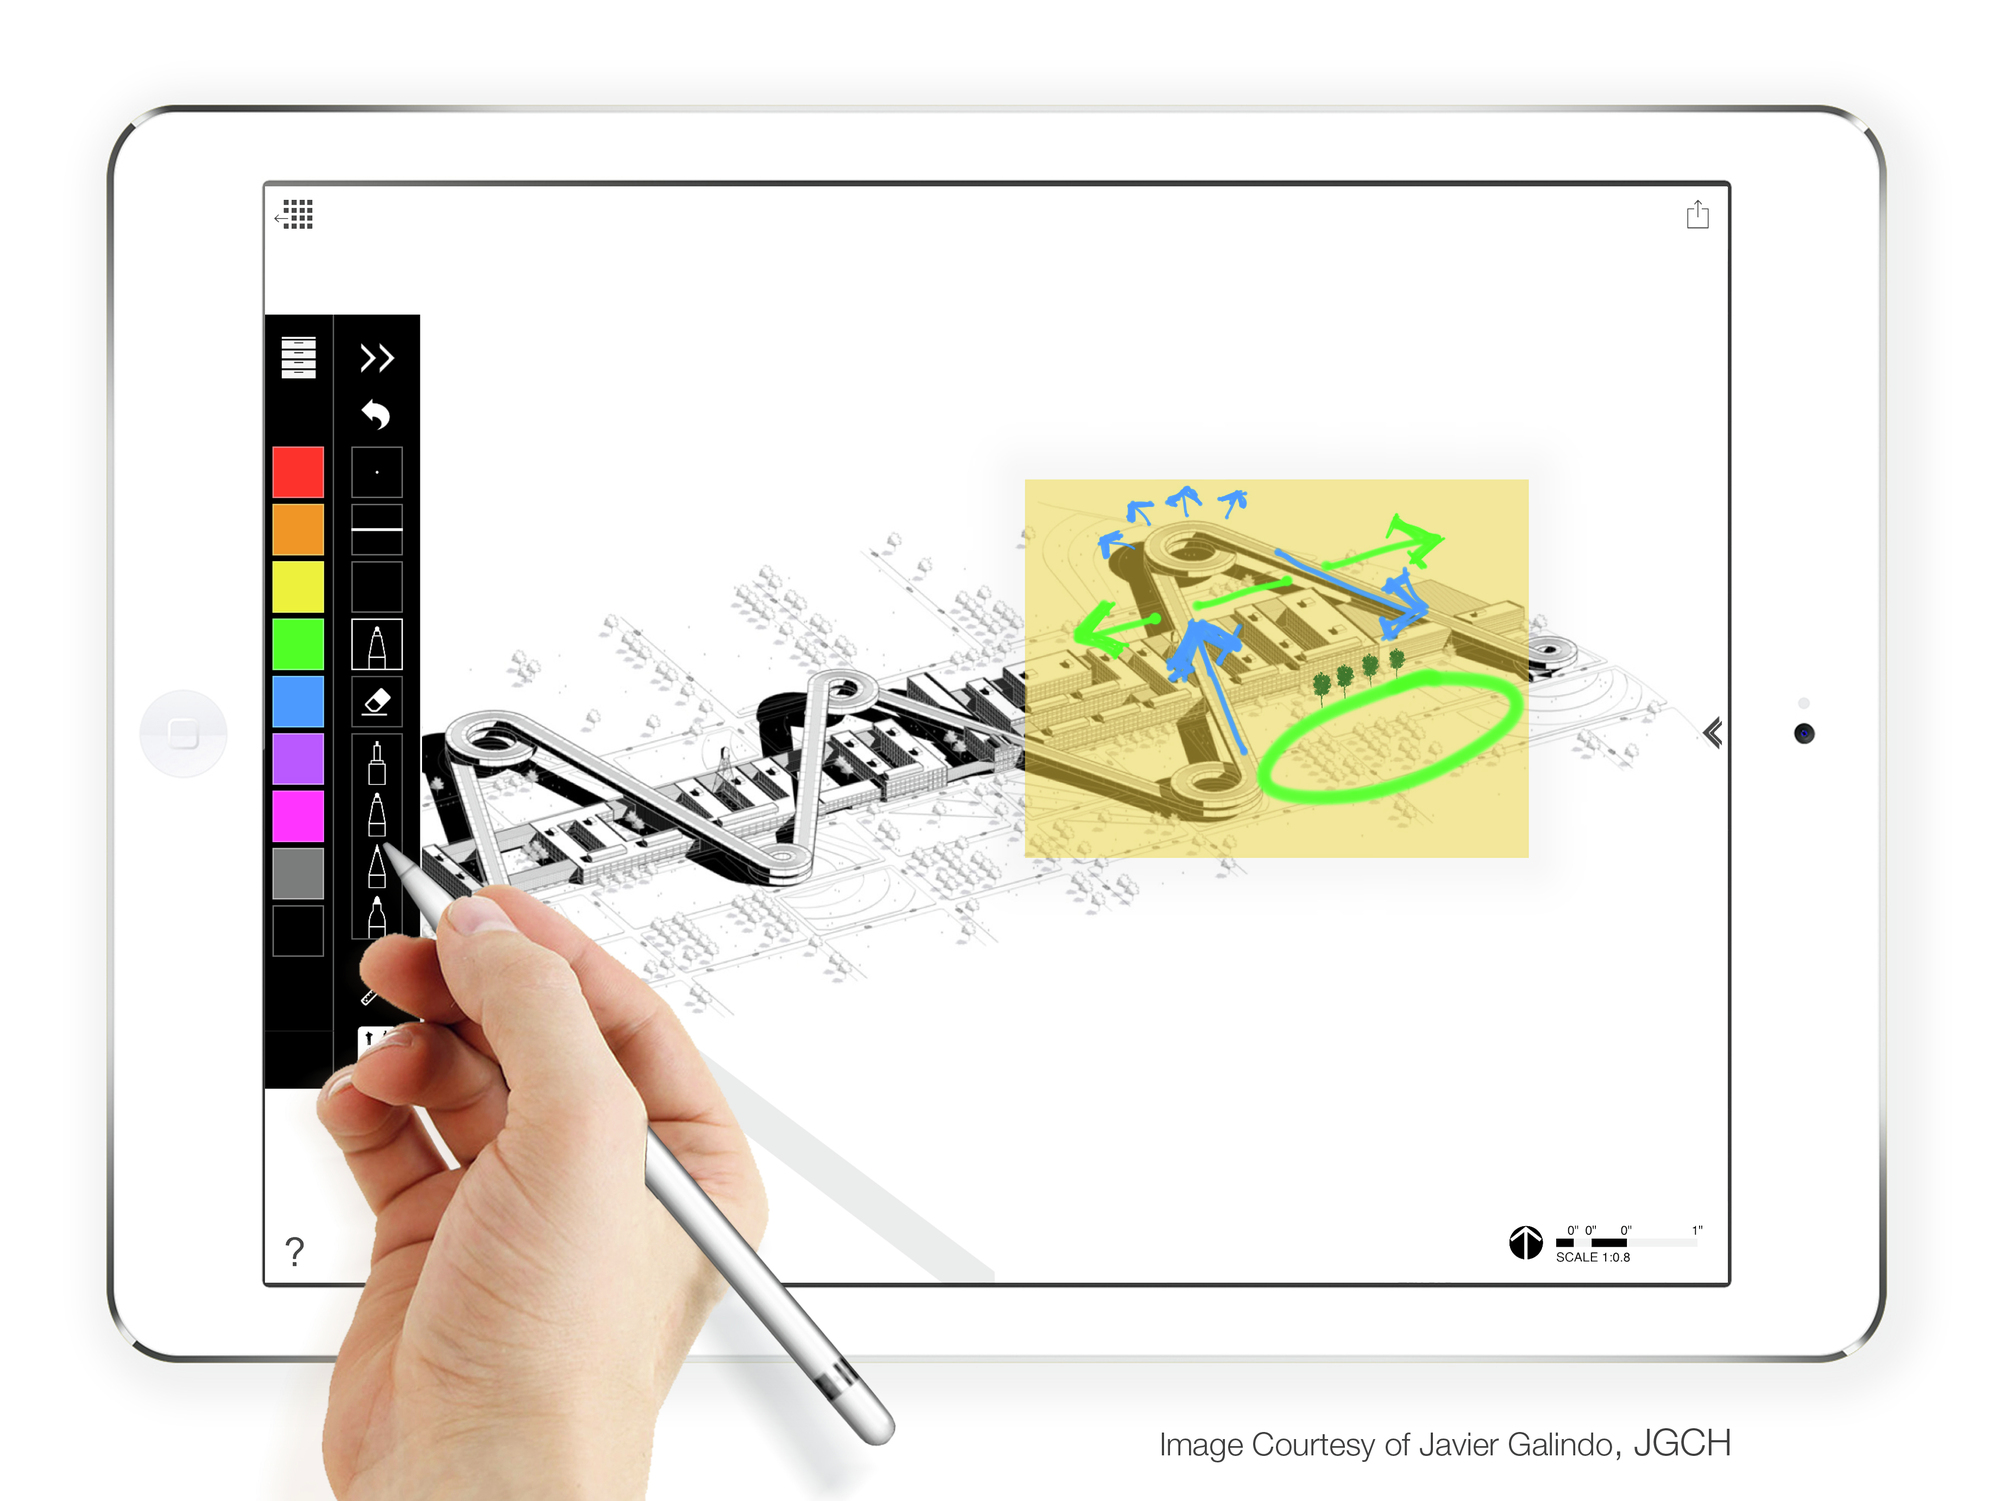 Architecture Drawing Ipad delighful architecture drawing ipad screenshot 3 intended decorating